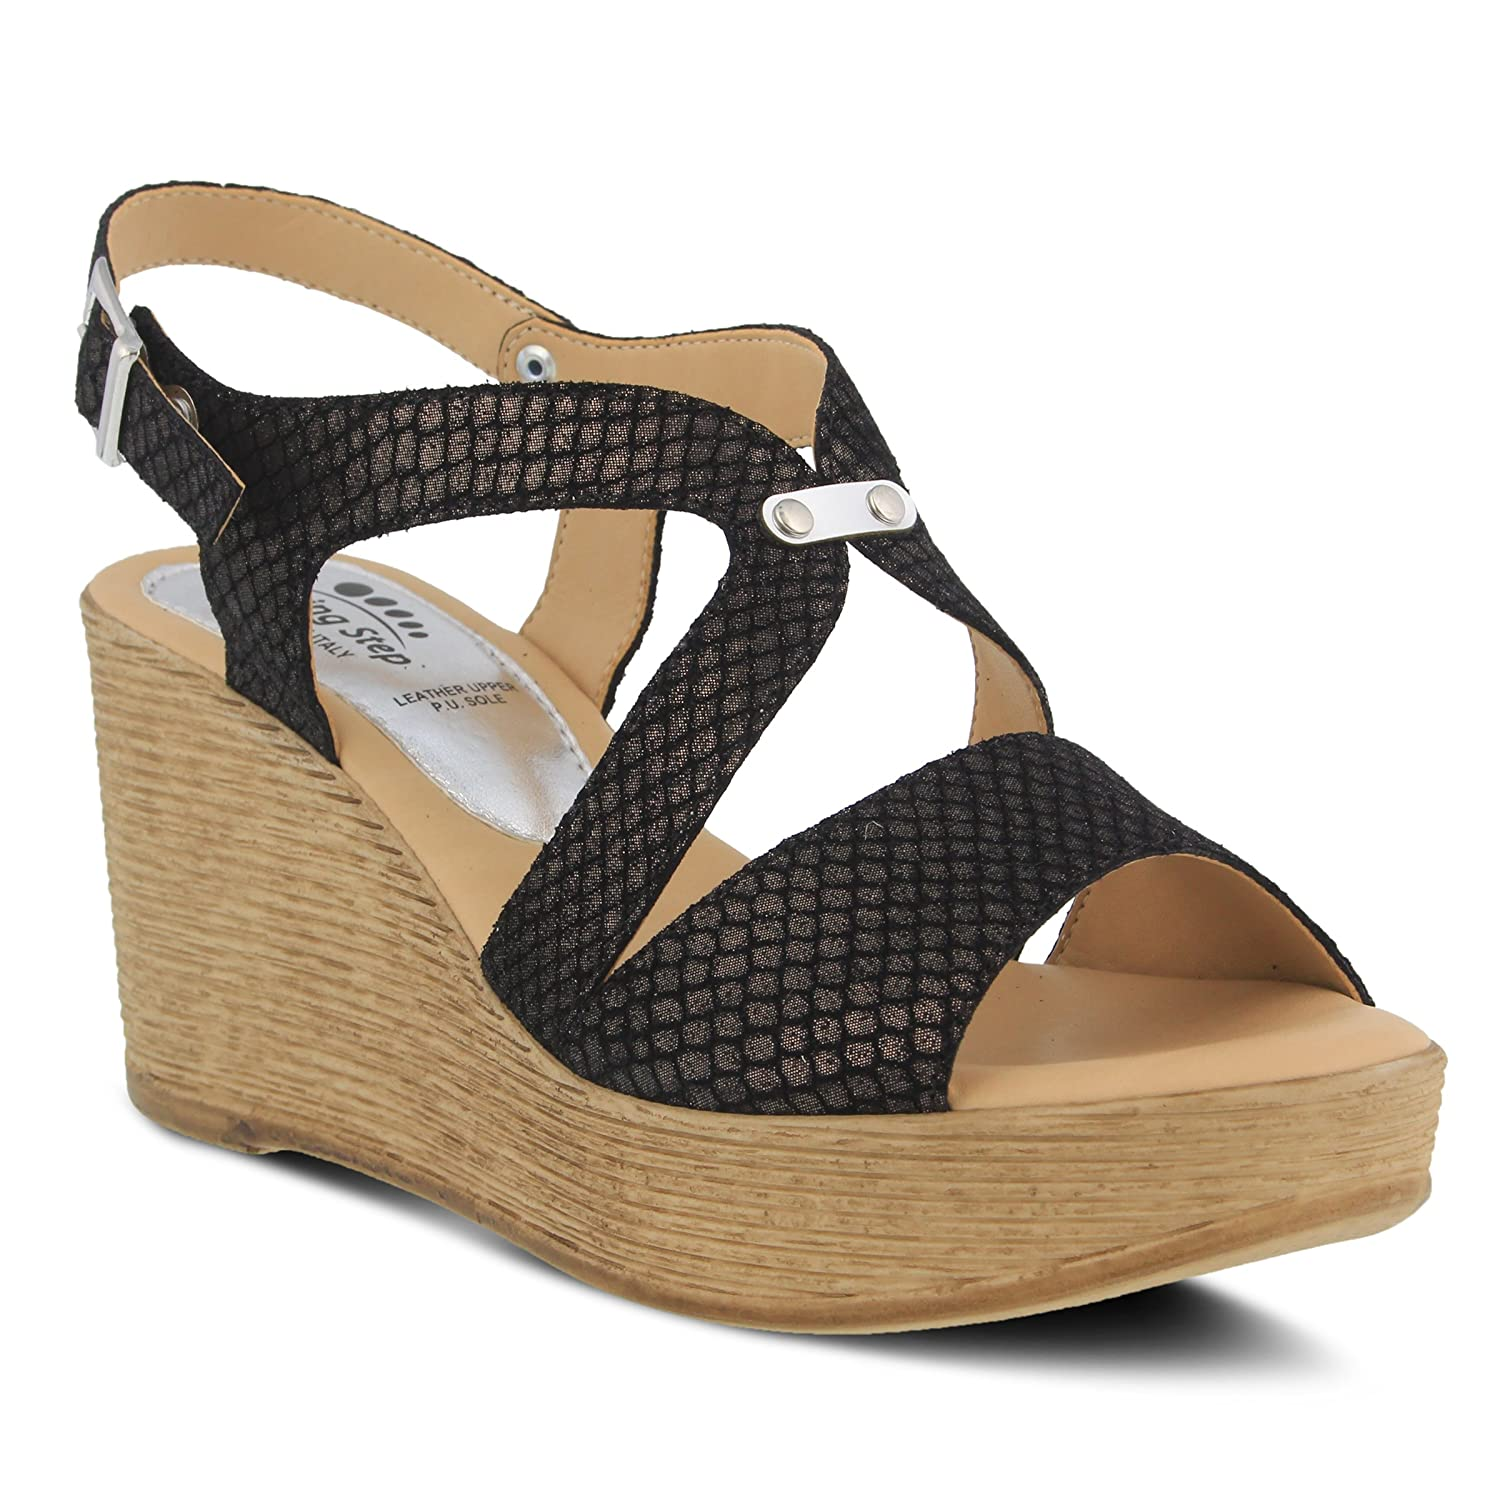 Spring Step Women's Nevena Wedge Sandal B079SJQCBG 35 M EU (US 5 US)|Black